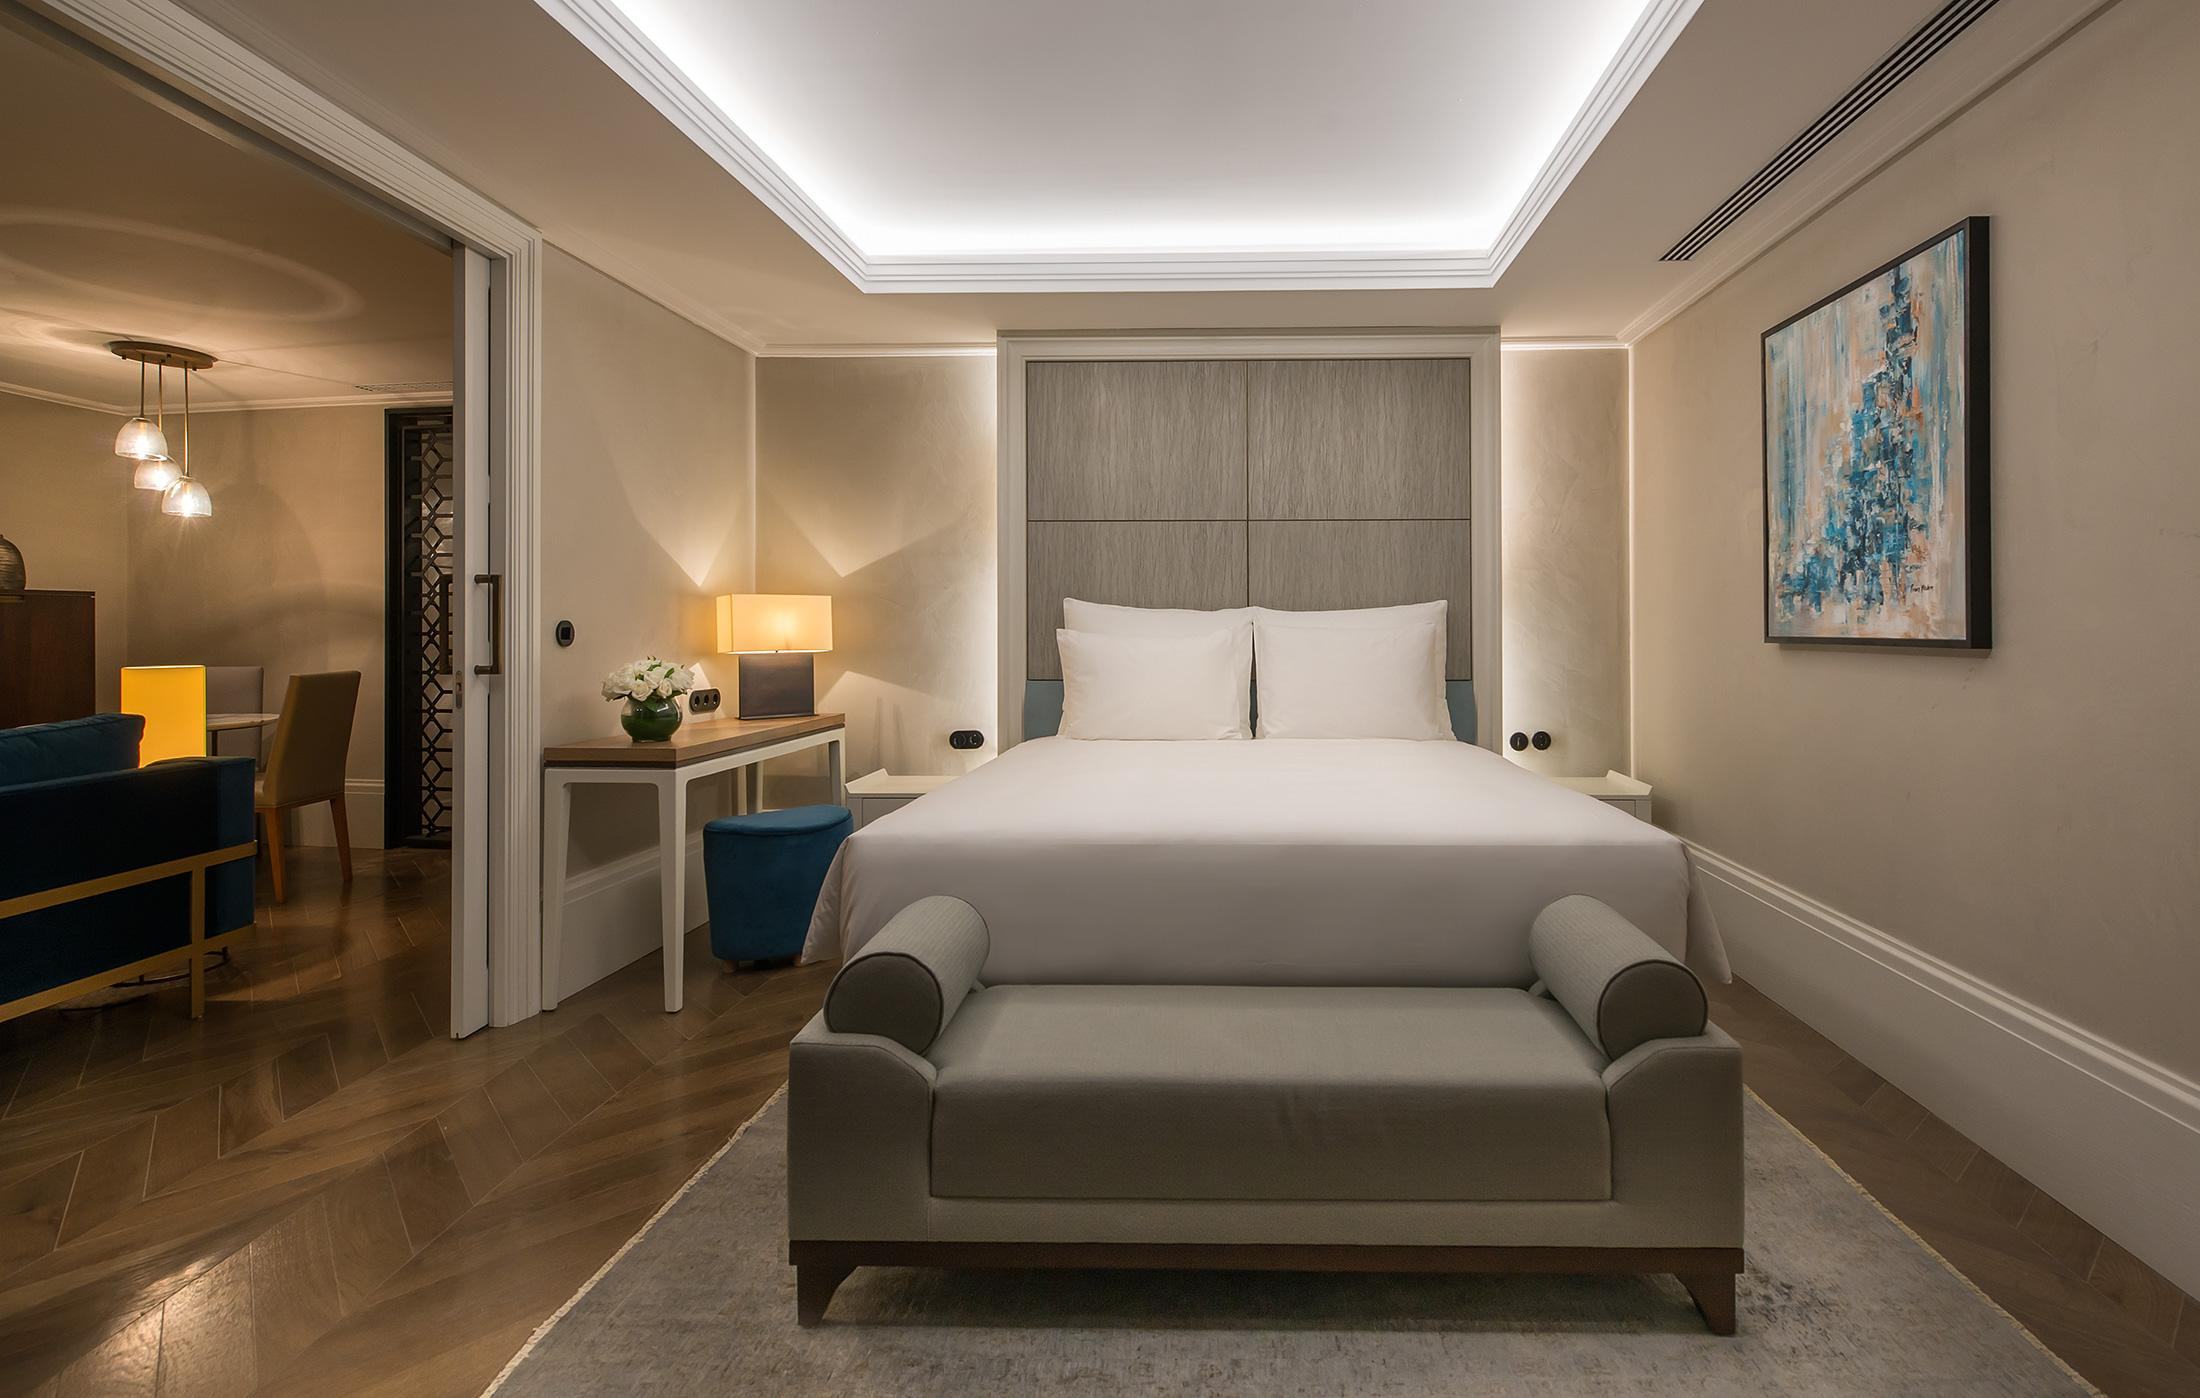 penthouse hotel bedroom with large bed and bench